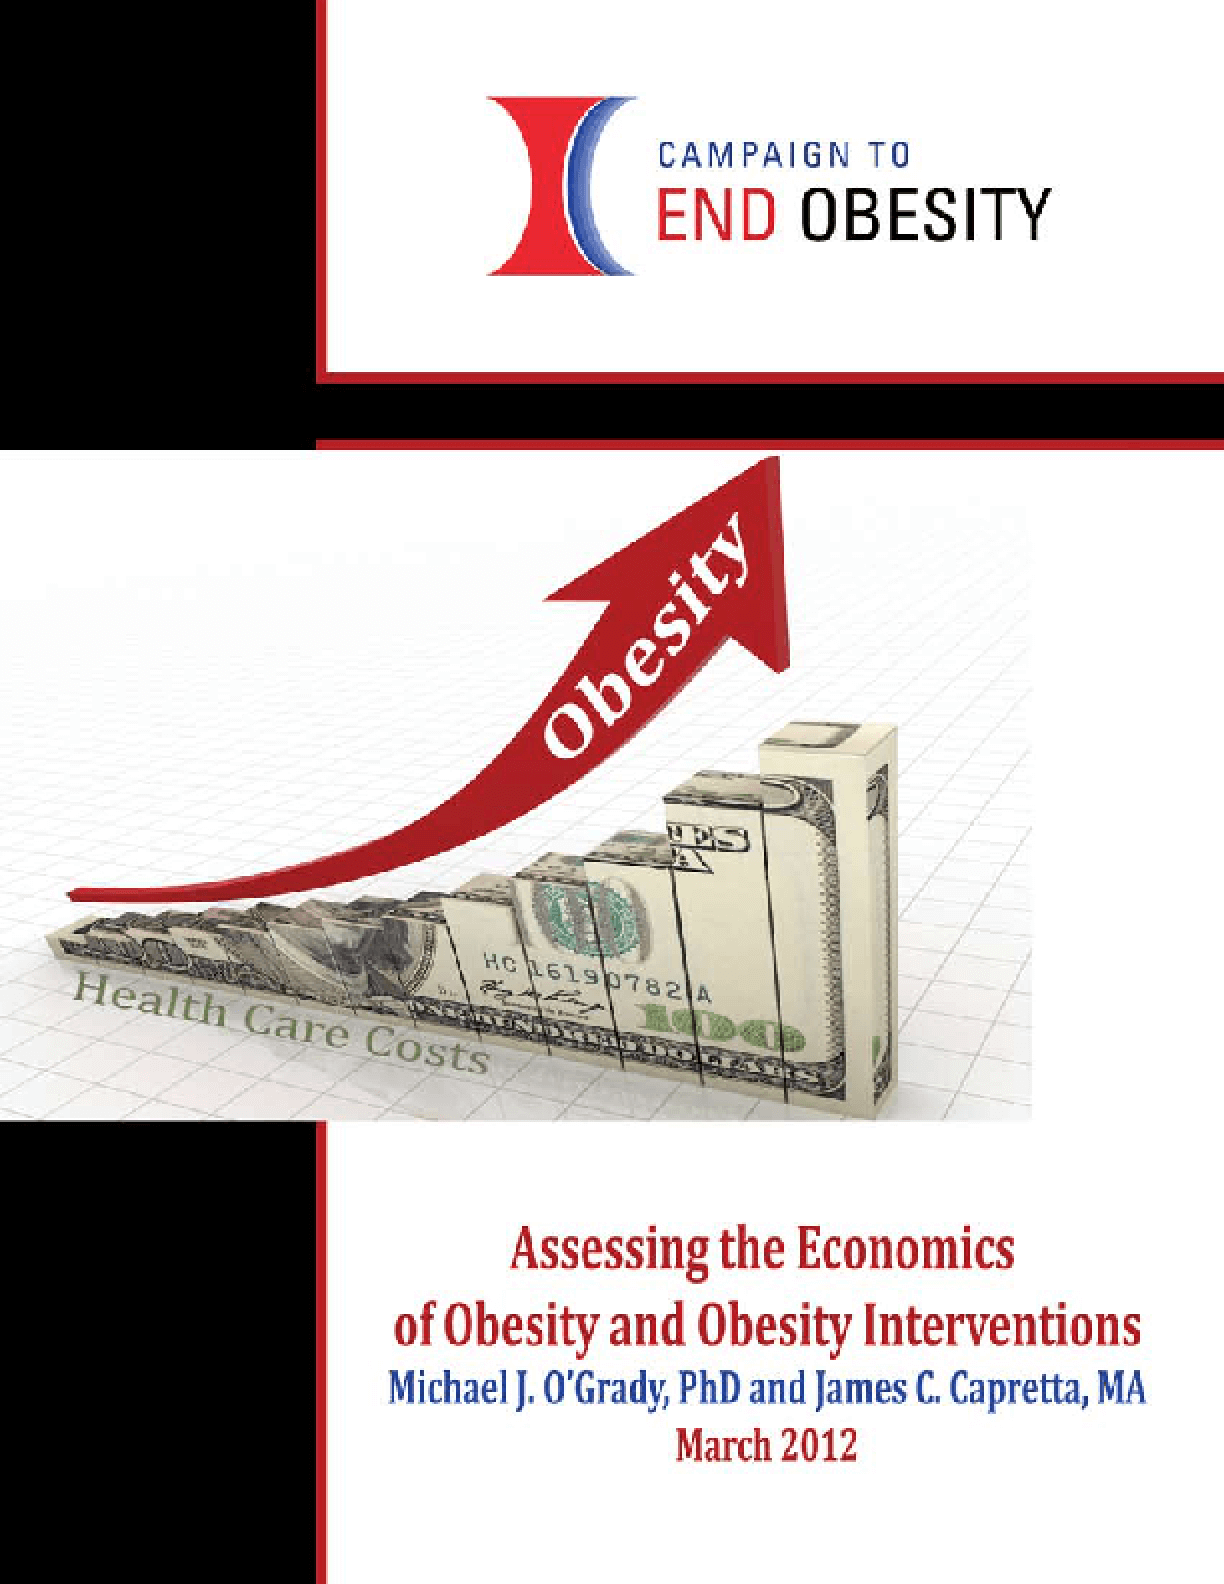 Assessing the Economics of Obesity and Obesity Interventions